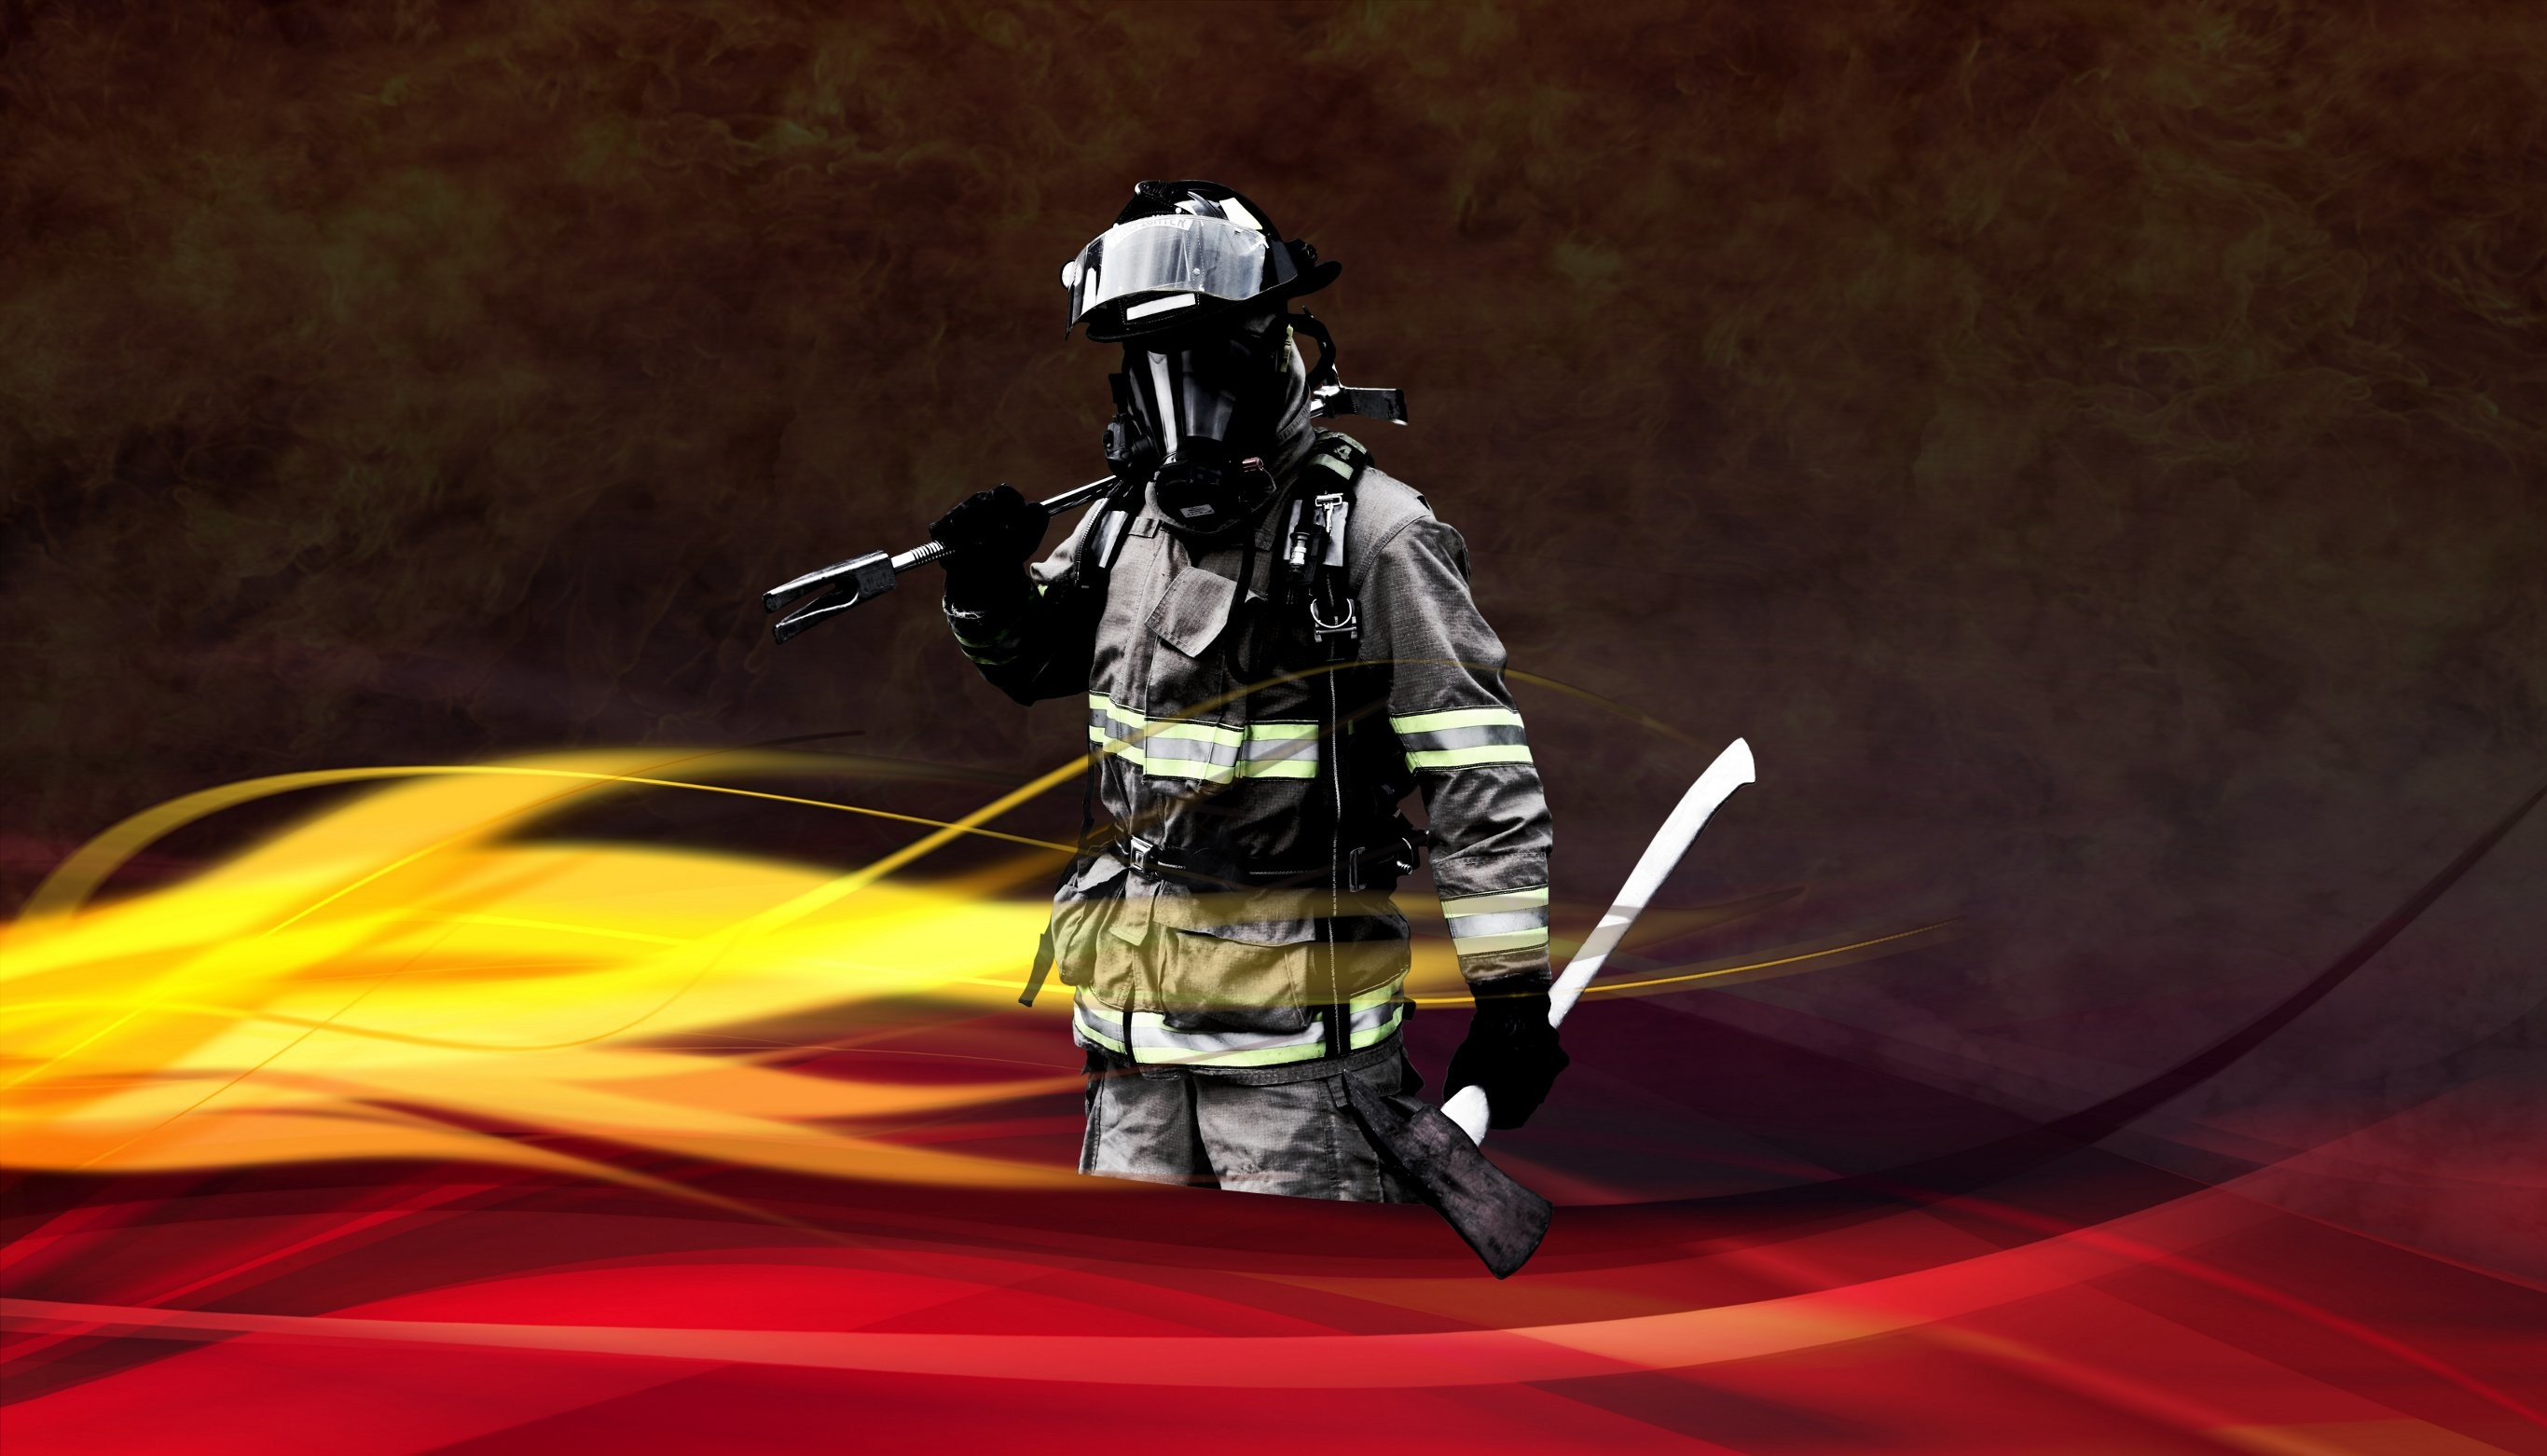 Volunteer Firefighter Wallpaper South sherman fire